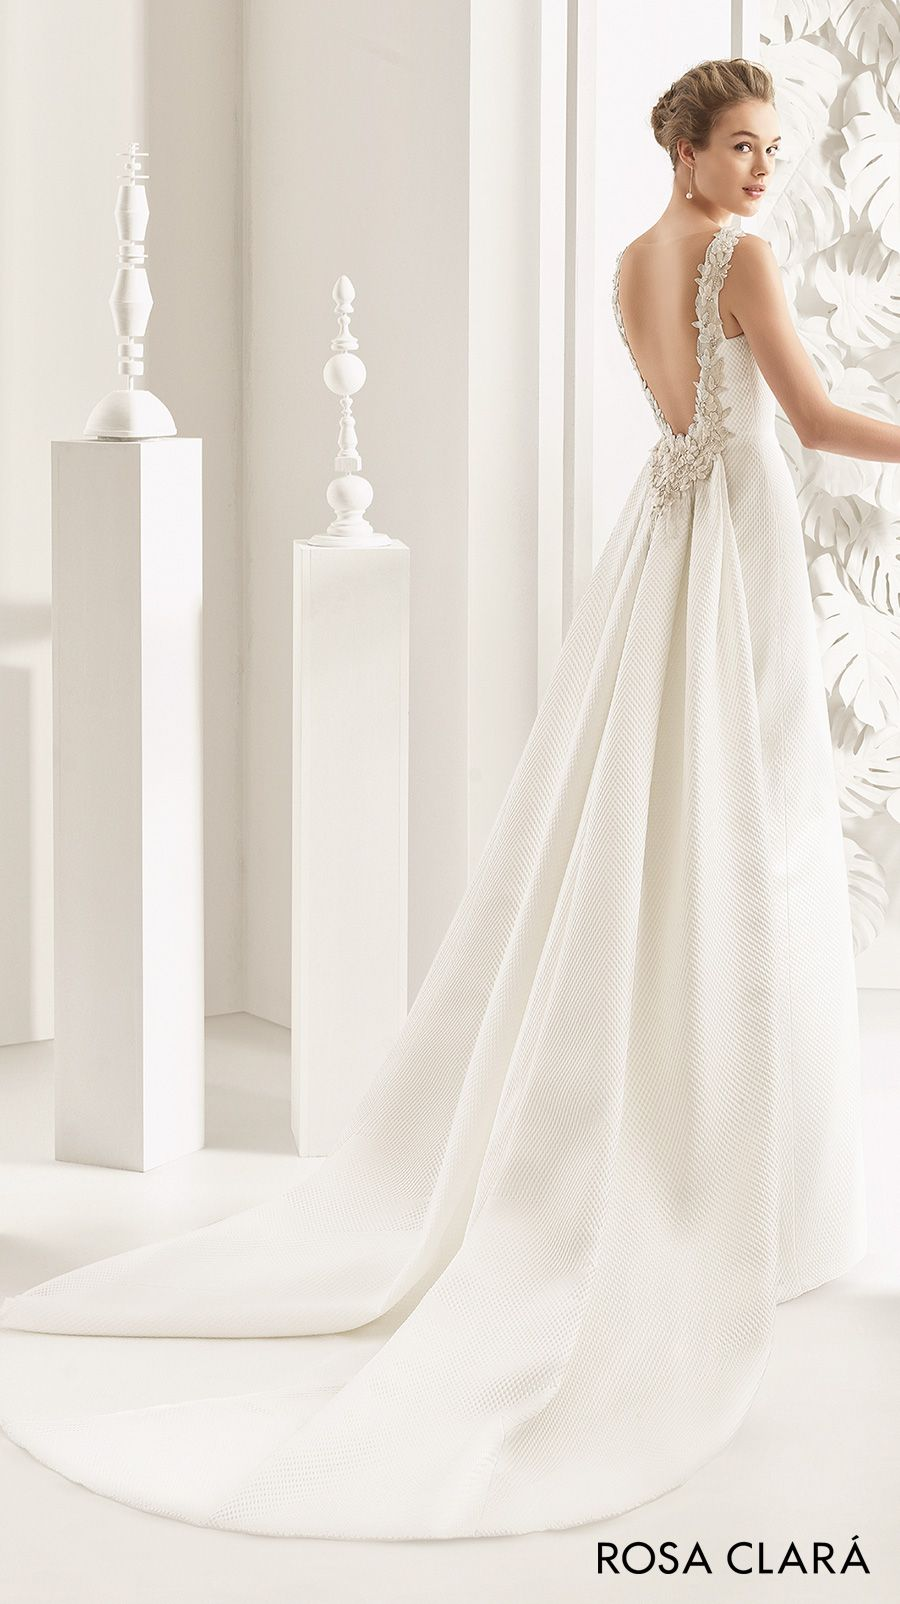 Rosa clará bridal collection u these wedding dresses feature